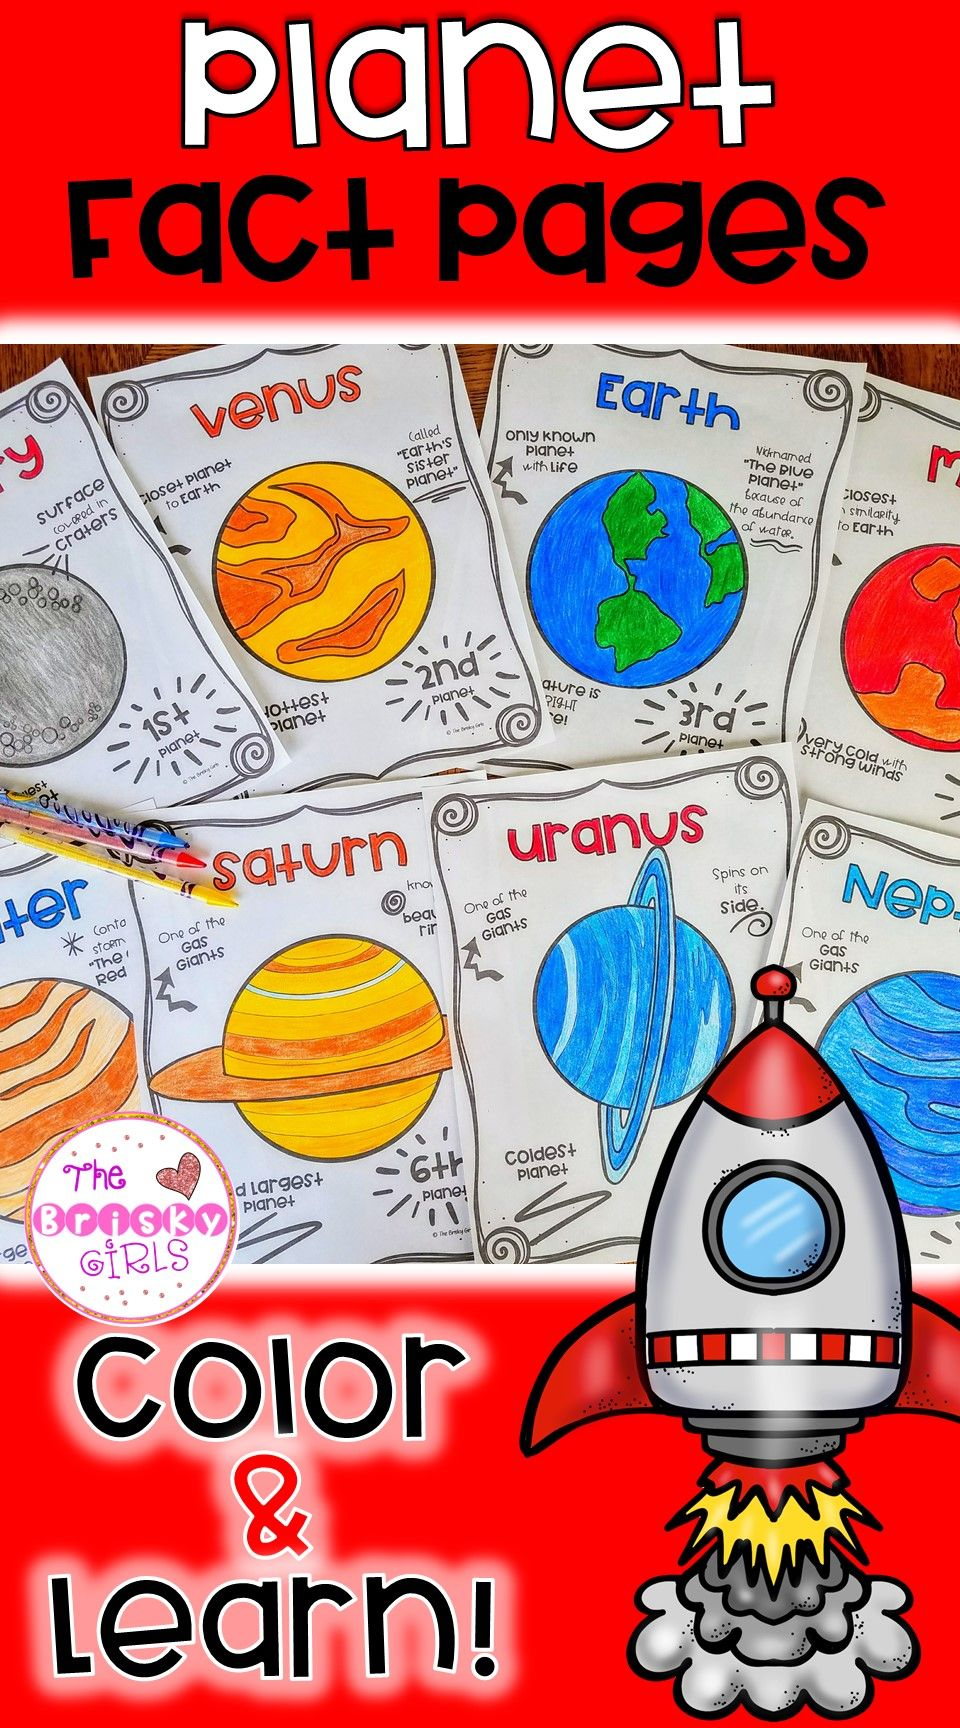 Planets teaching planets planet resources planet coloring pages planet facts solar system activities outer space activities outer space resources